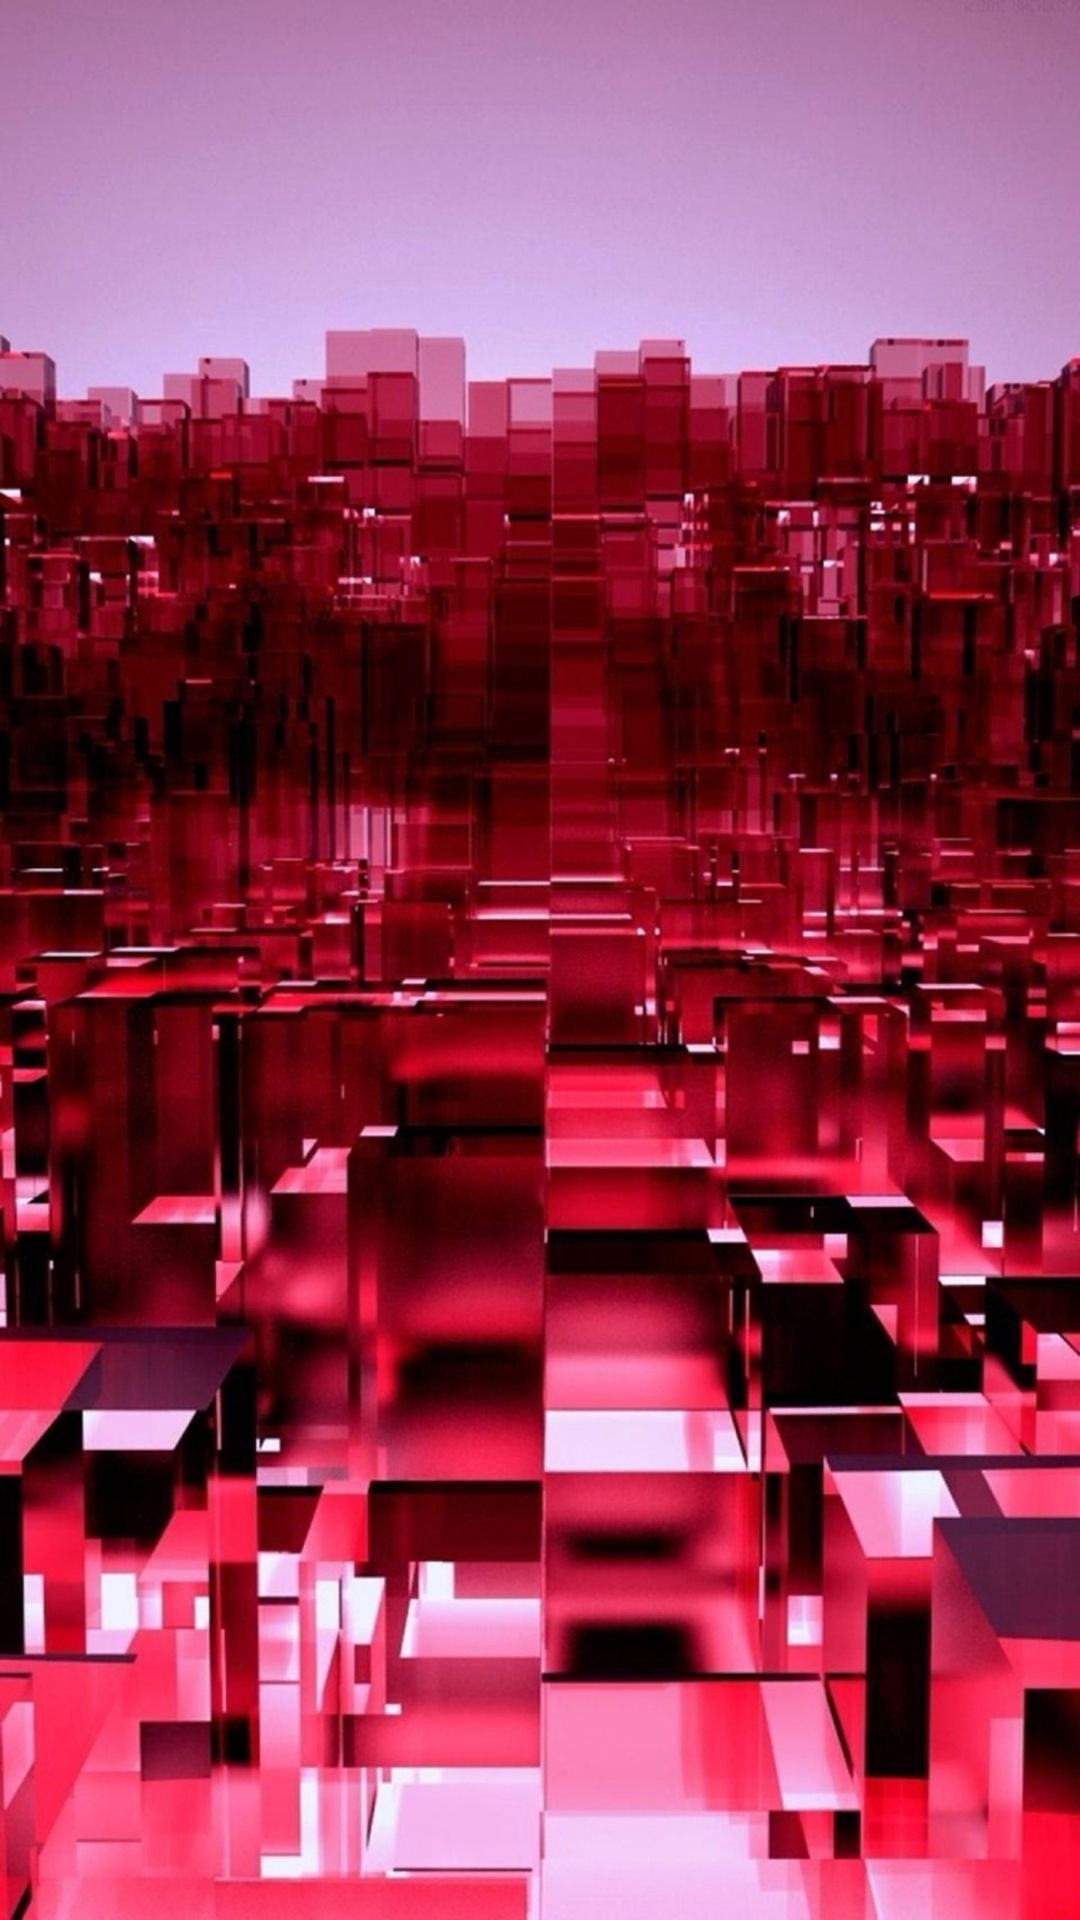 Abstract 3D Overlap Cubes Red Pattern IPhone 6 Plus Wallpaper